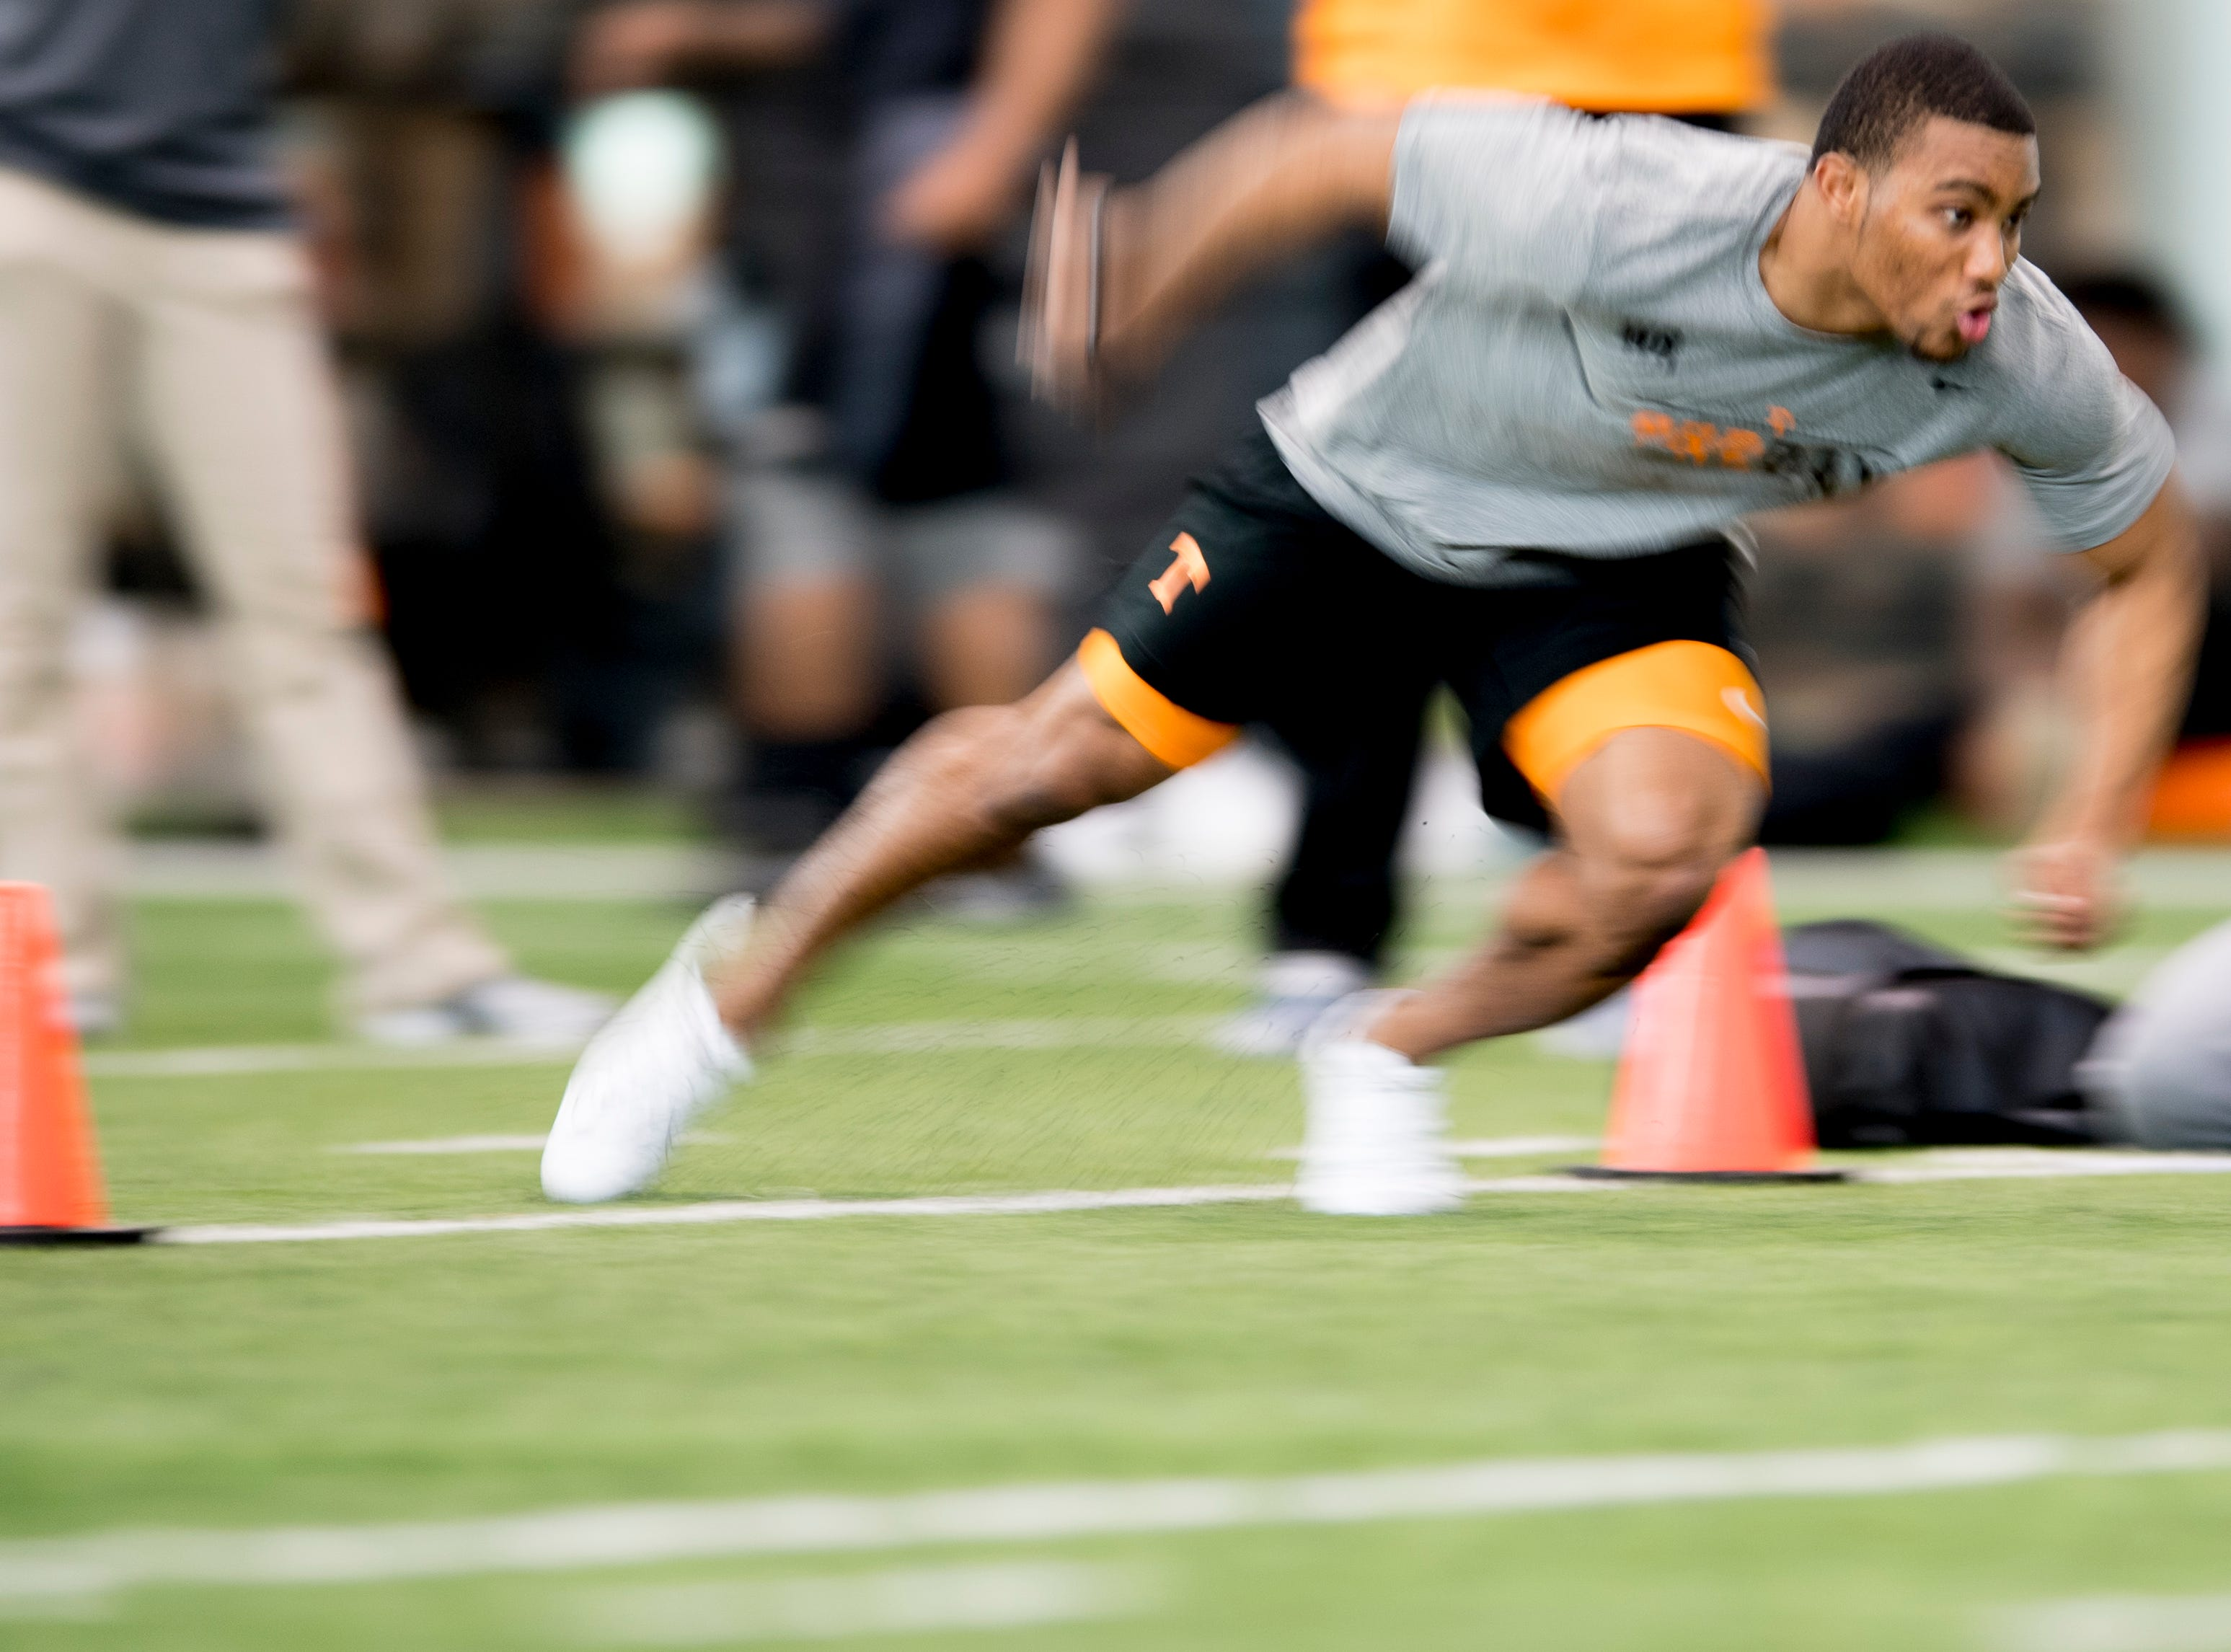 Malik Elion does the three-cone-drill at Tennessee Pro Day at Anderson Training Facility in Knoxville, Tennessee on Thursday, March 14, 2019. Draft prospects from Tennessee and other schools worked out before NFL scouts.